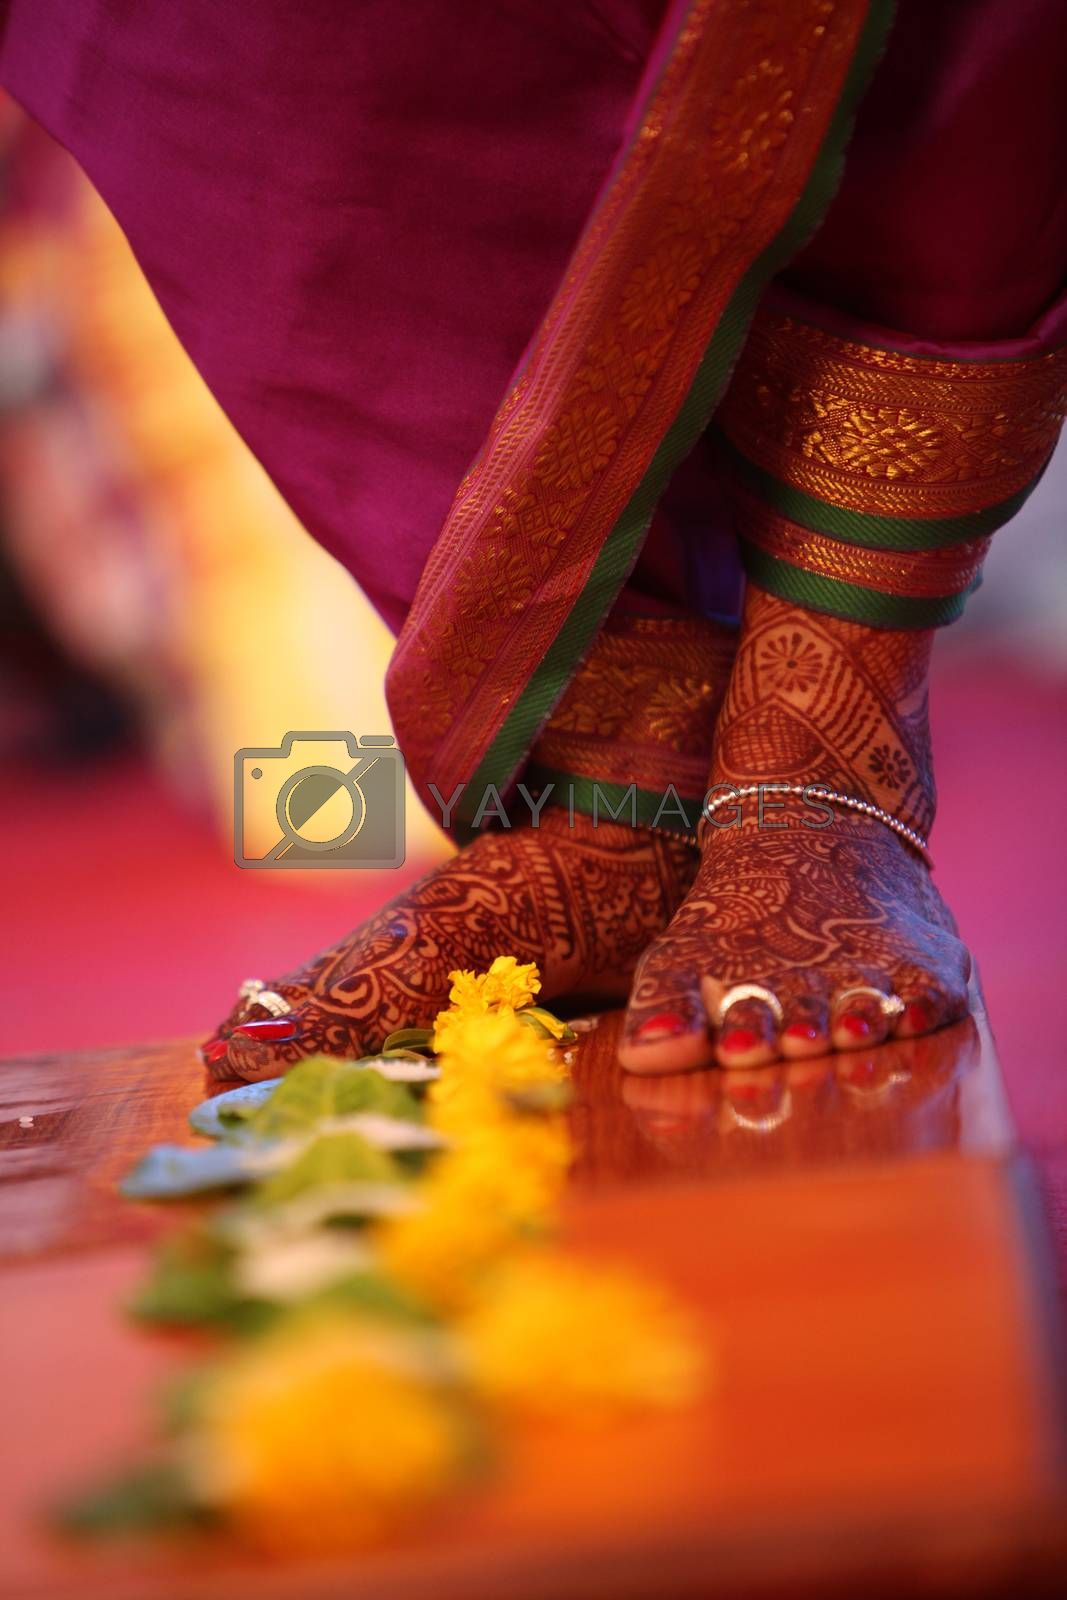 The feet of a bride during a traditional Indian wedding ritual of stepping over flowers.